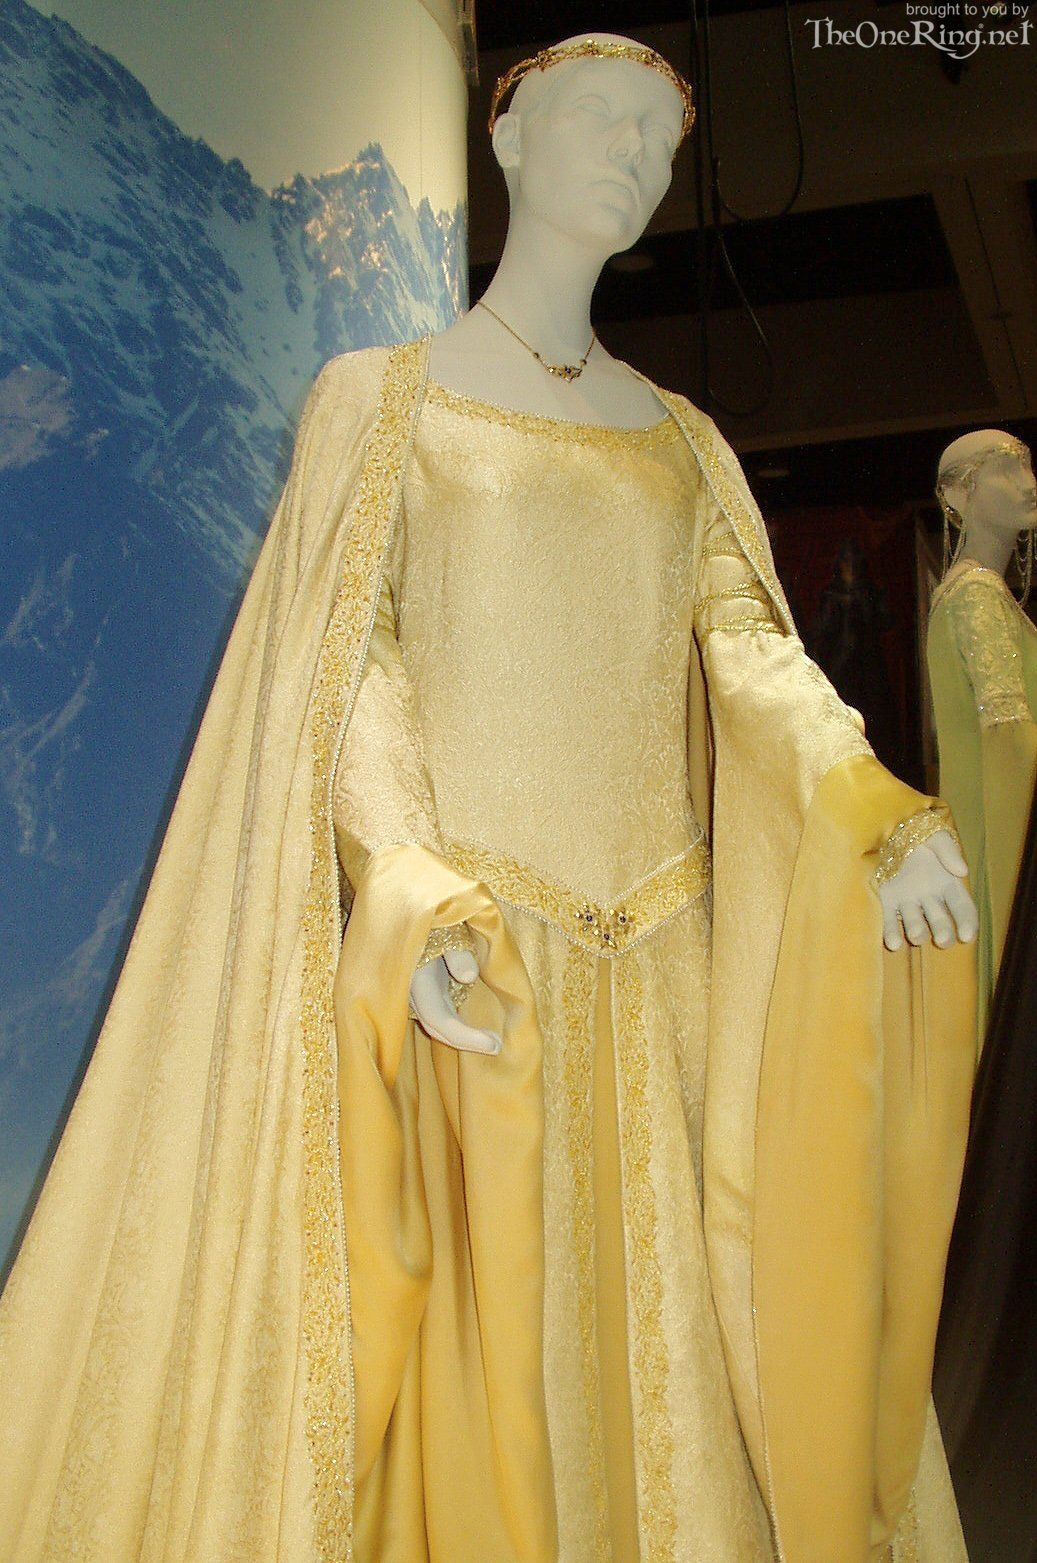 Eowyn Golden Wedding Dress Museum Exhibit Costumes (Not